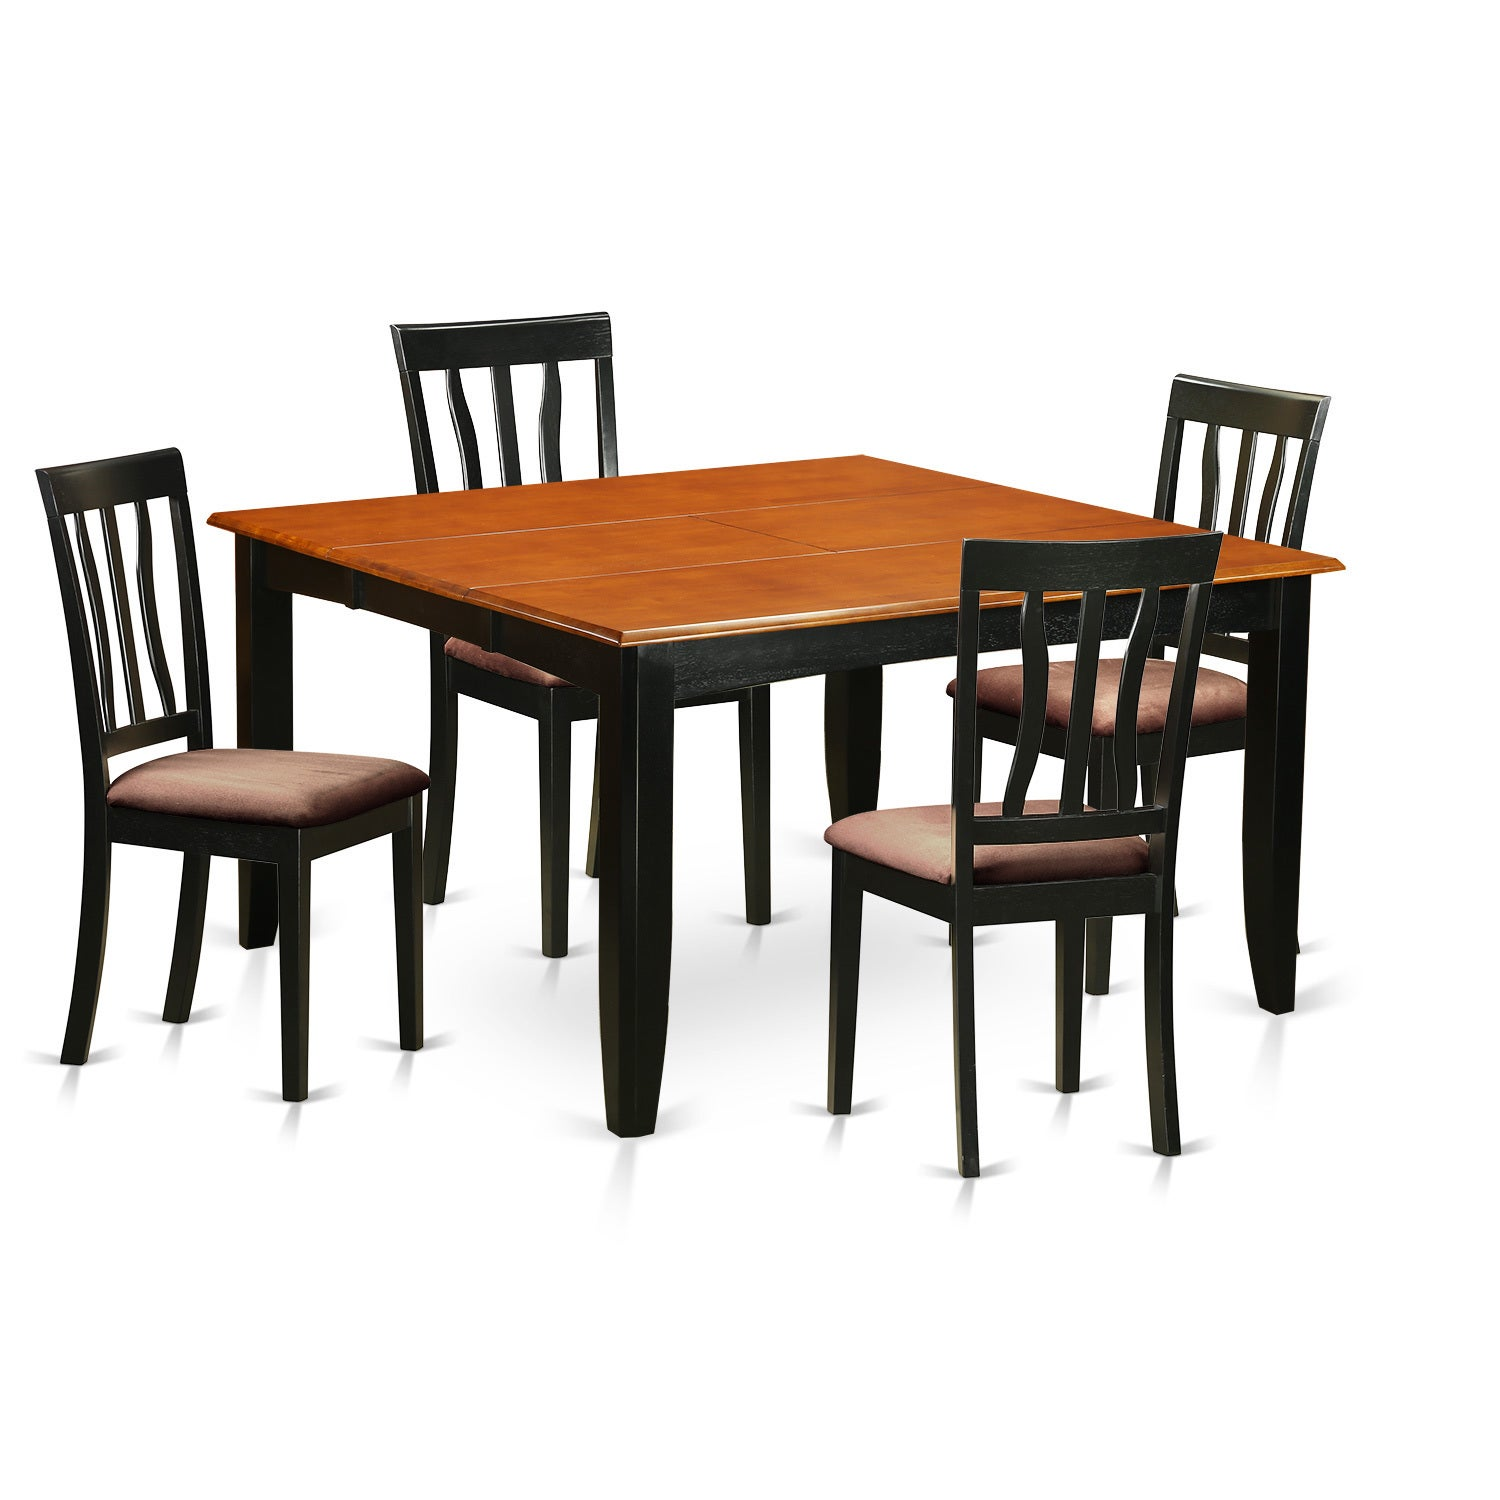 Shop Pfan5 Bch Black Cherry Rubberwood Kitchen Dining Table And 4